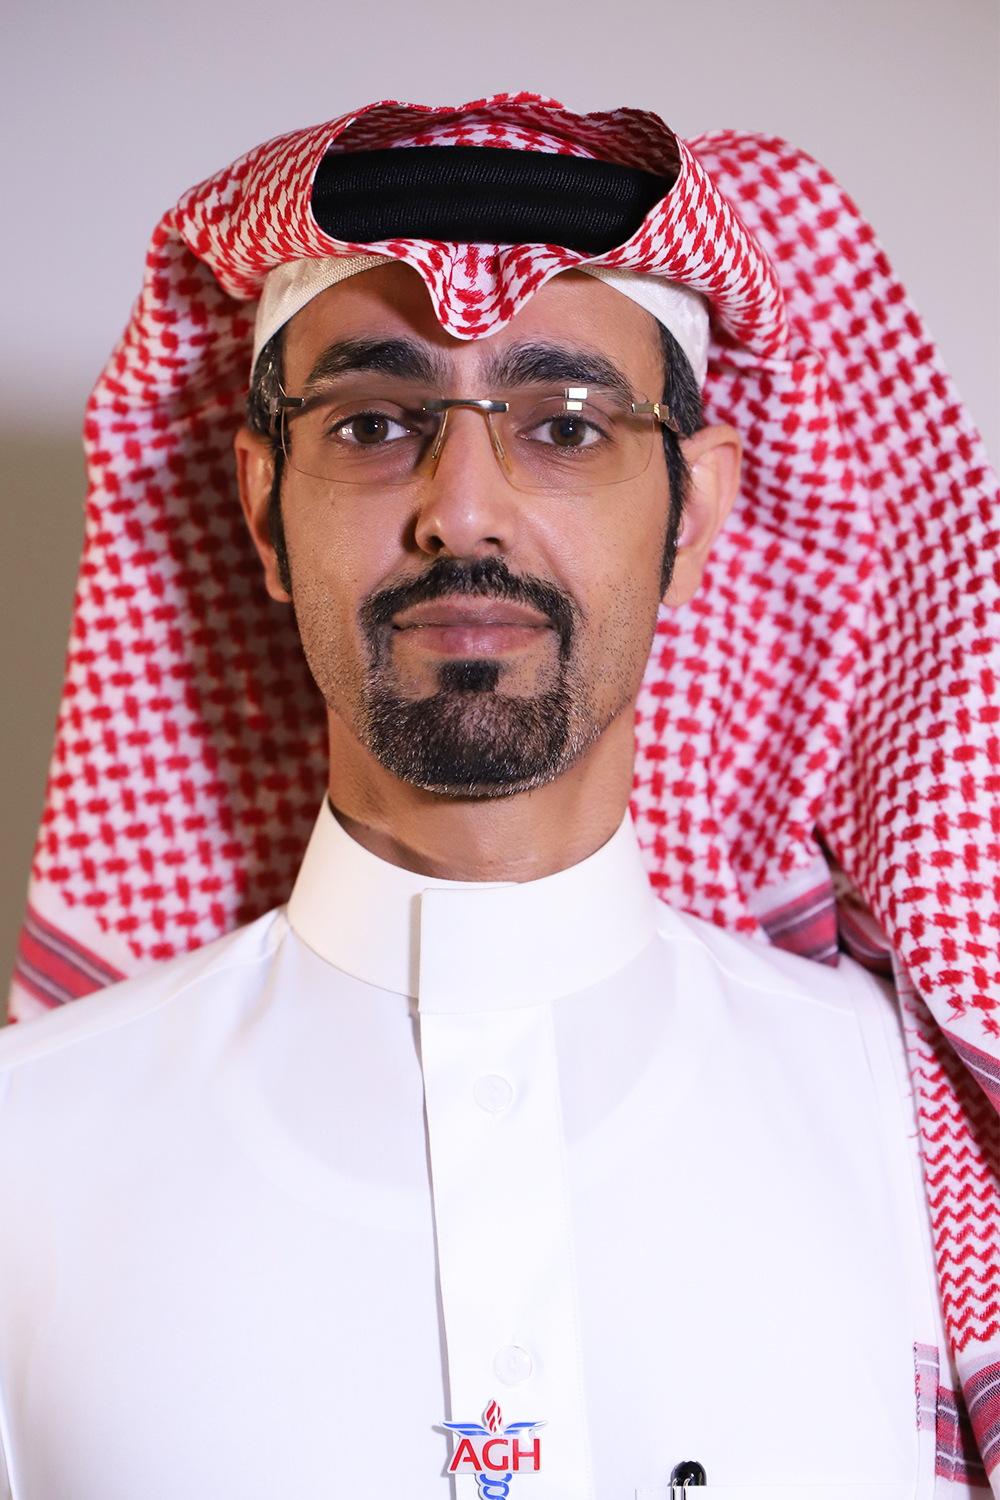 MANSOUR AHMED ALSAFLAN